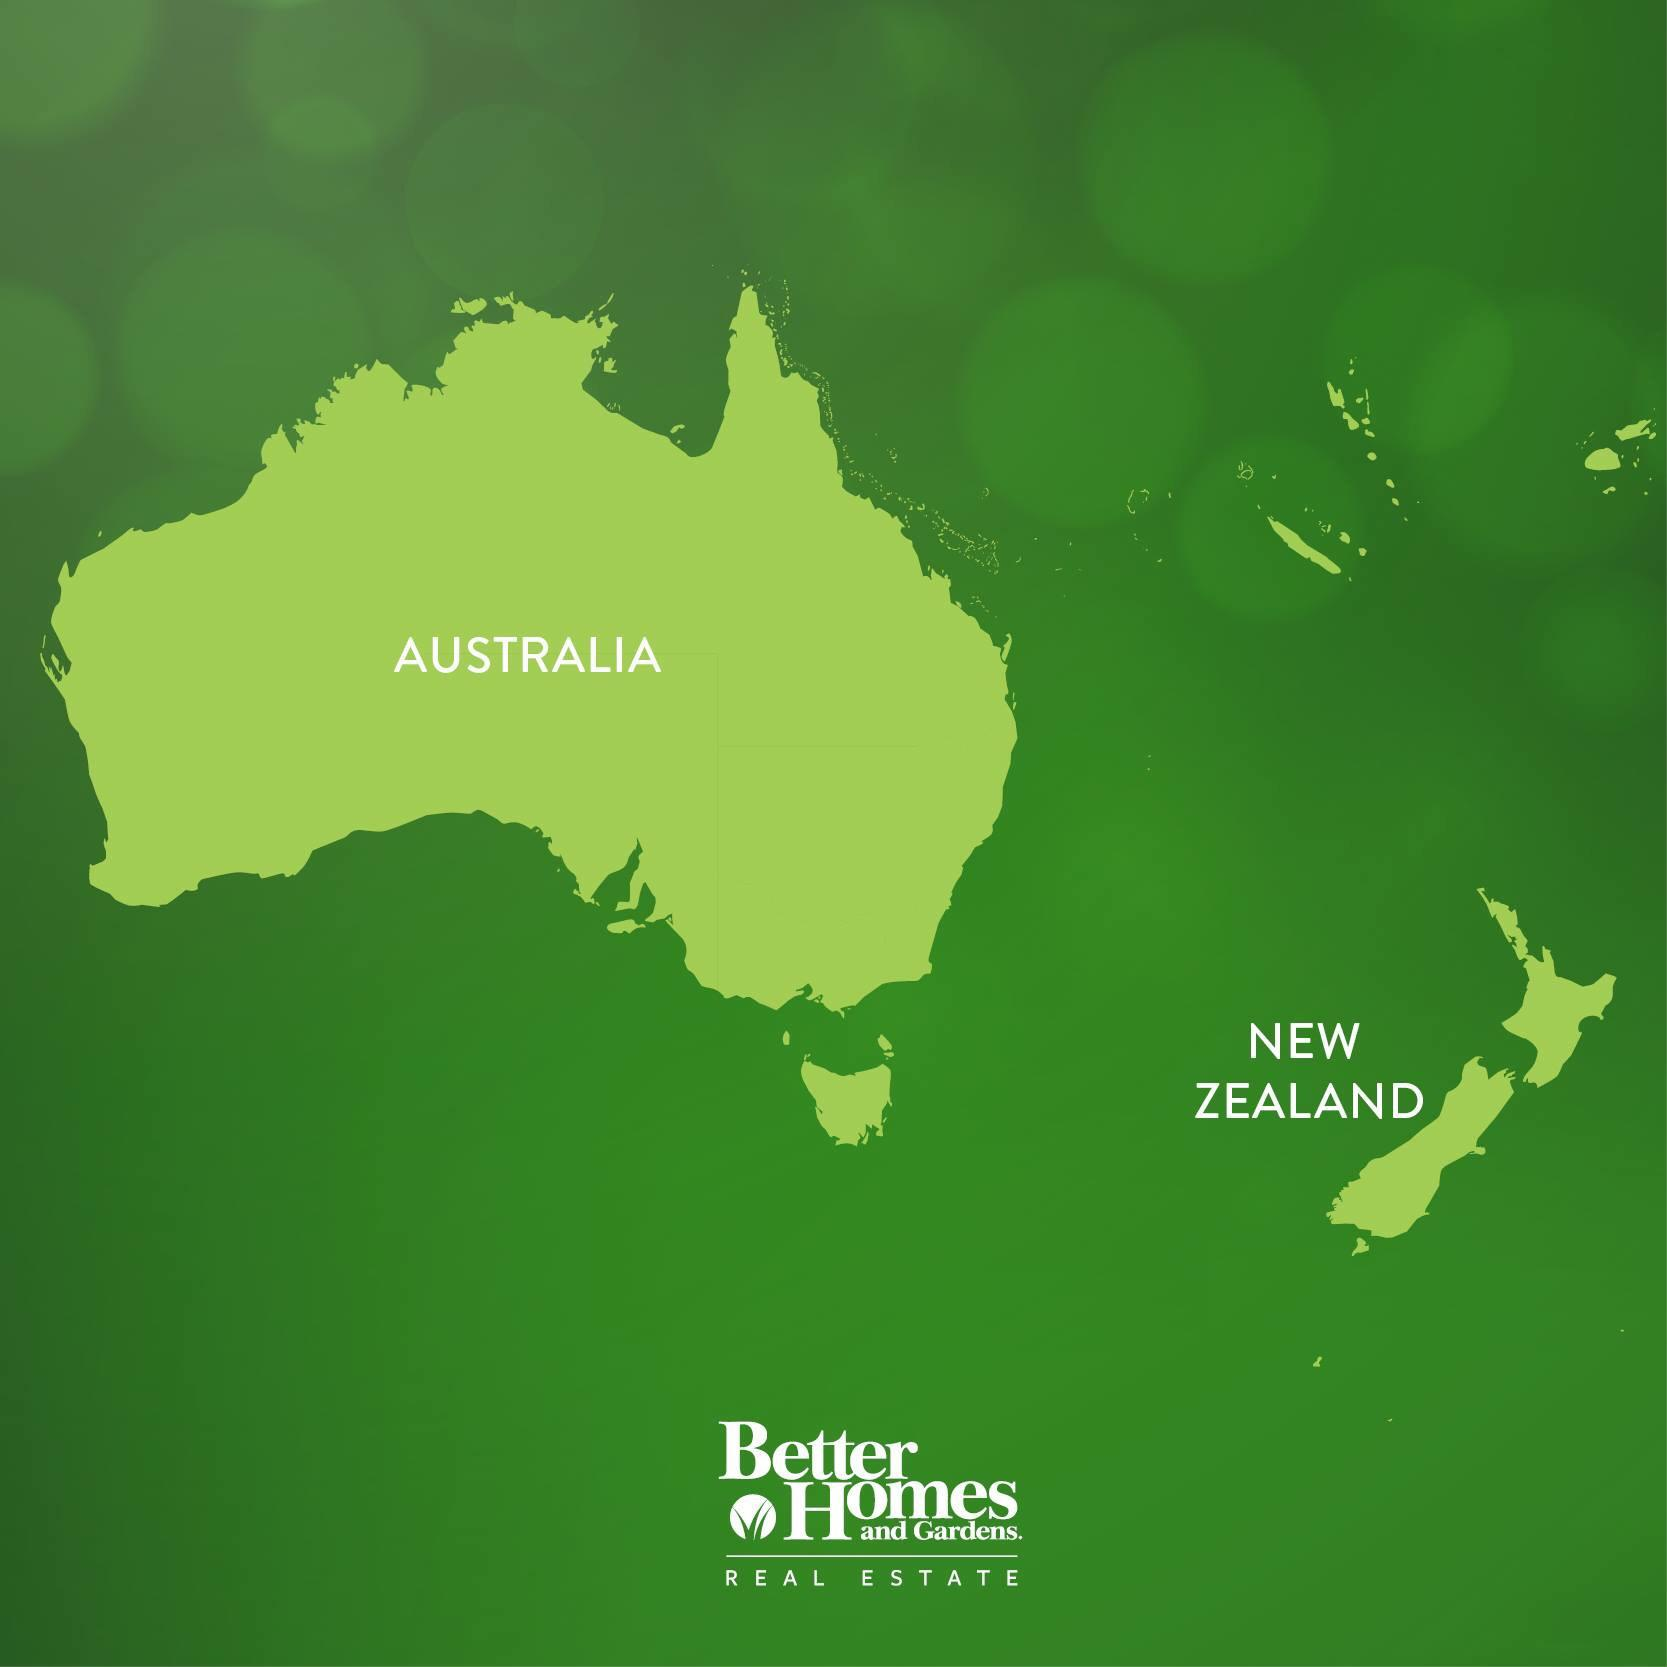 Better Homes And Gardens Real Estate Enters Australia And New Zealand  Through Strategic Relationship As It Celebrates Its Ten Year Anniversary